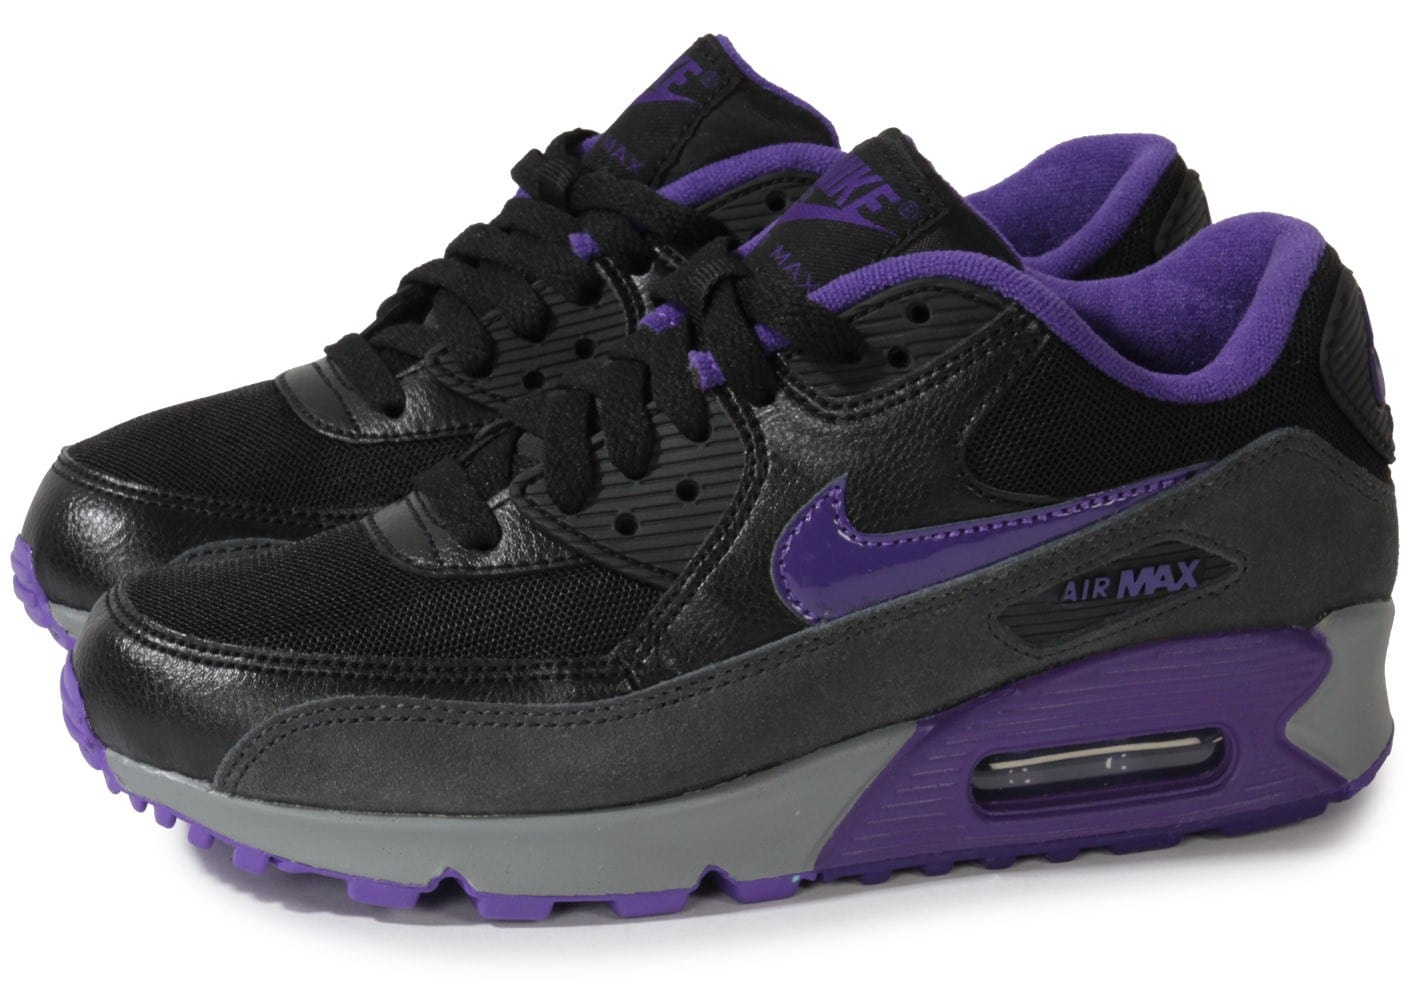 nike air max 90 essential noire chaussures chaussures chausport. Black Bedroom Furniture Sets. Home Design Ideas